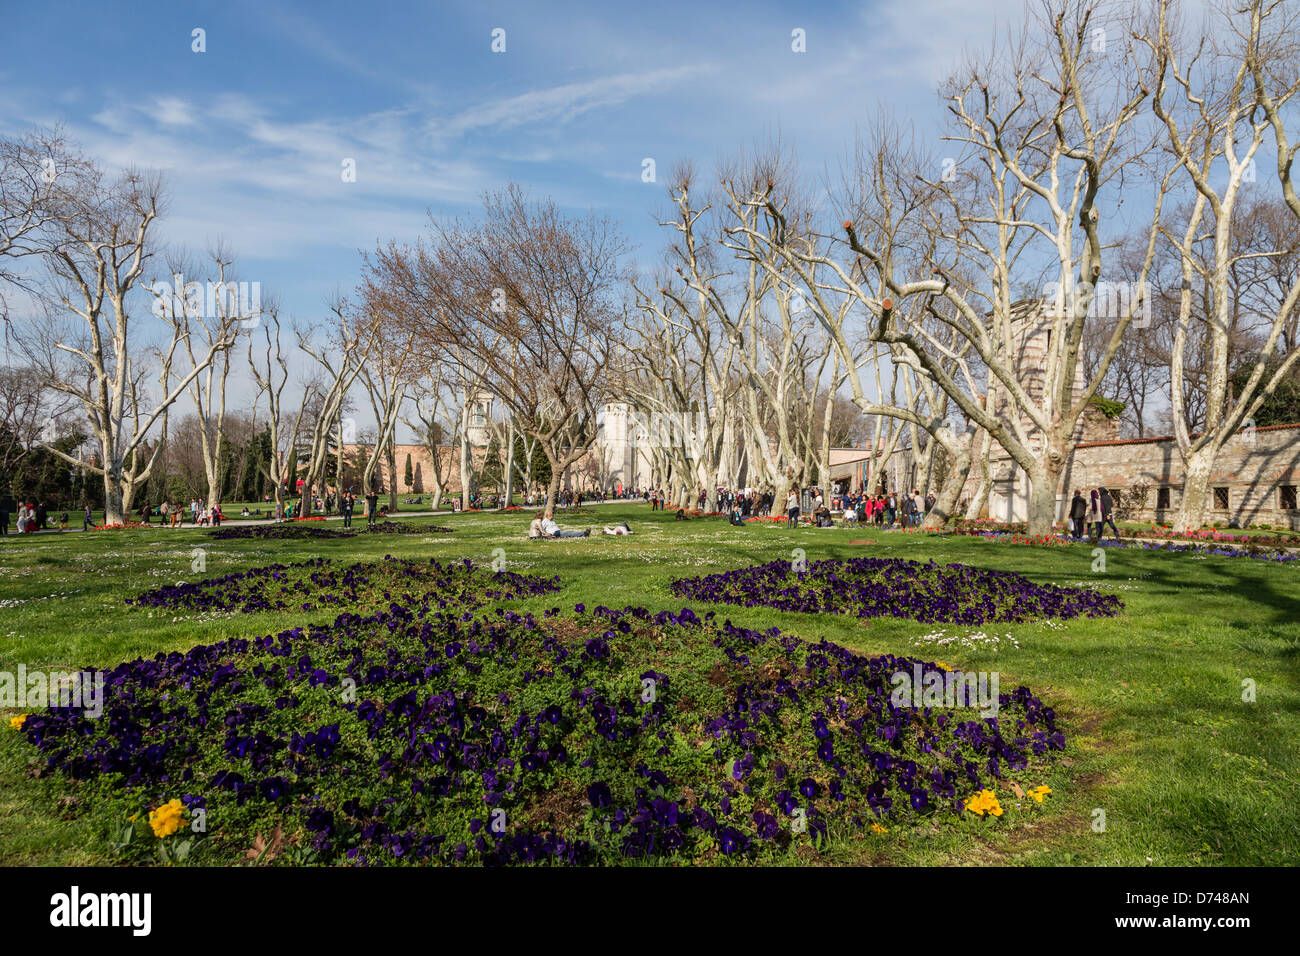 Garden in the first courtyard of Topkapi palace, Istanbul, Turkey. - Stock Image